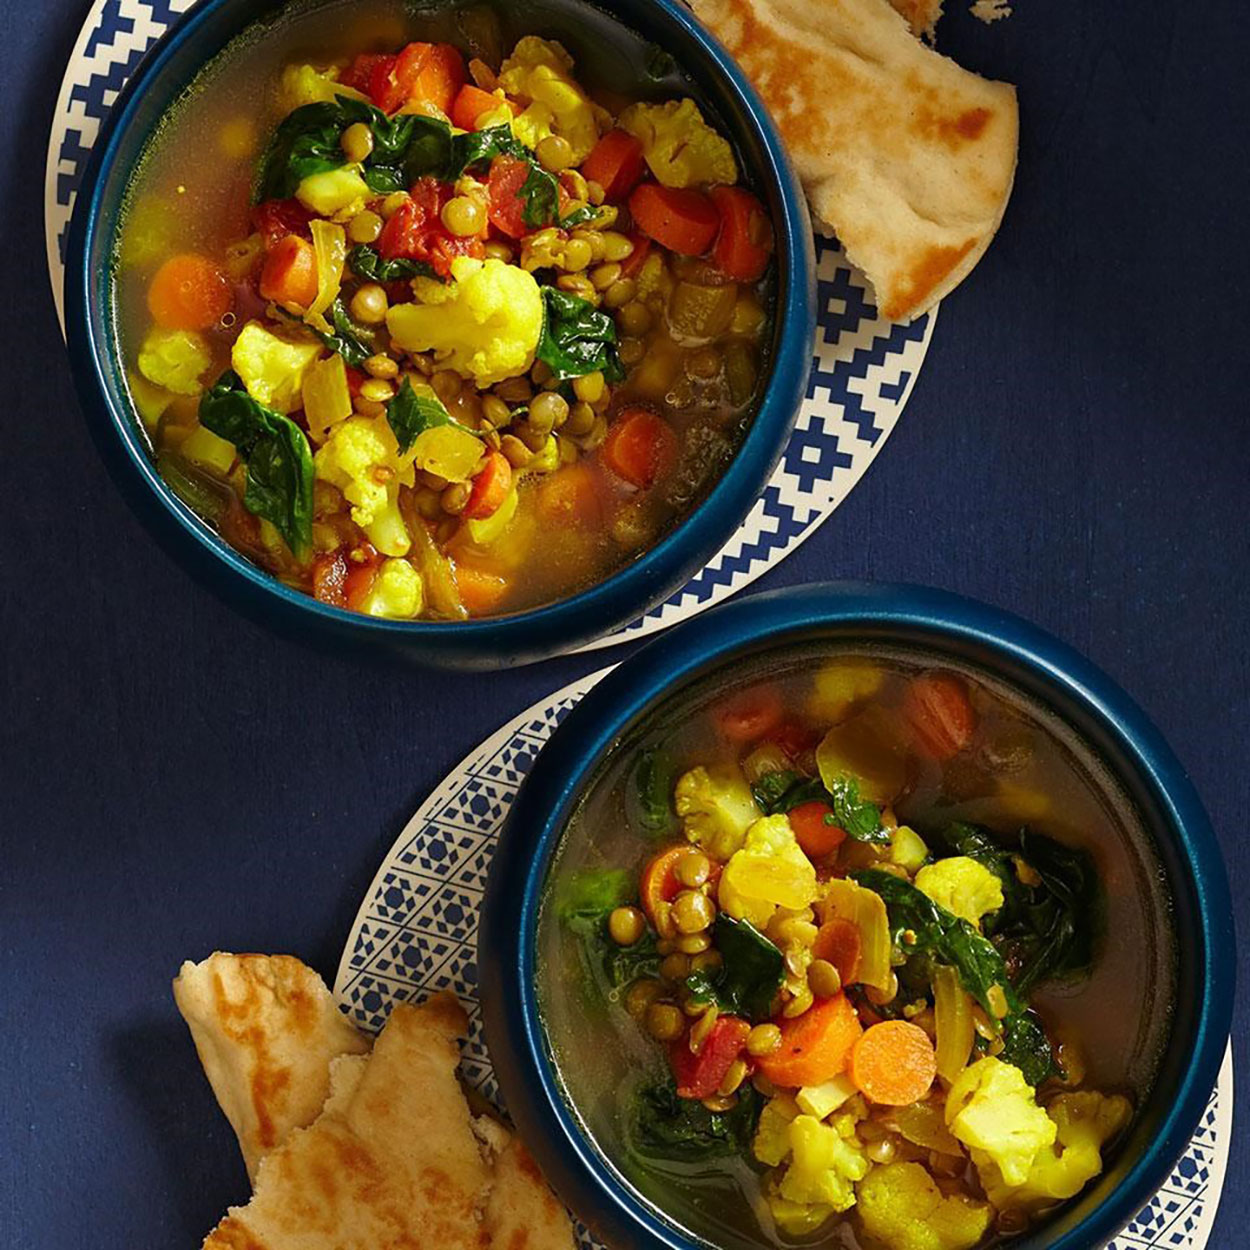 Slow-Cooker Moroccan Lentil Soup in bowls with flat bread